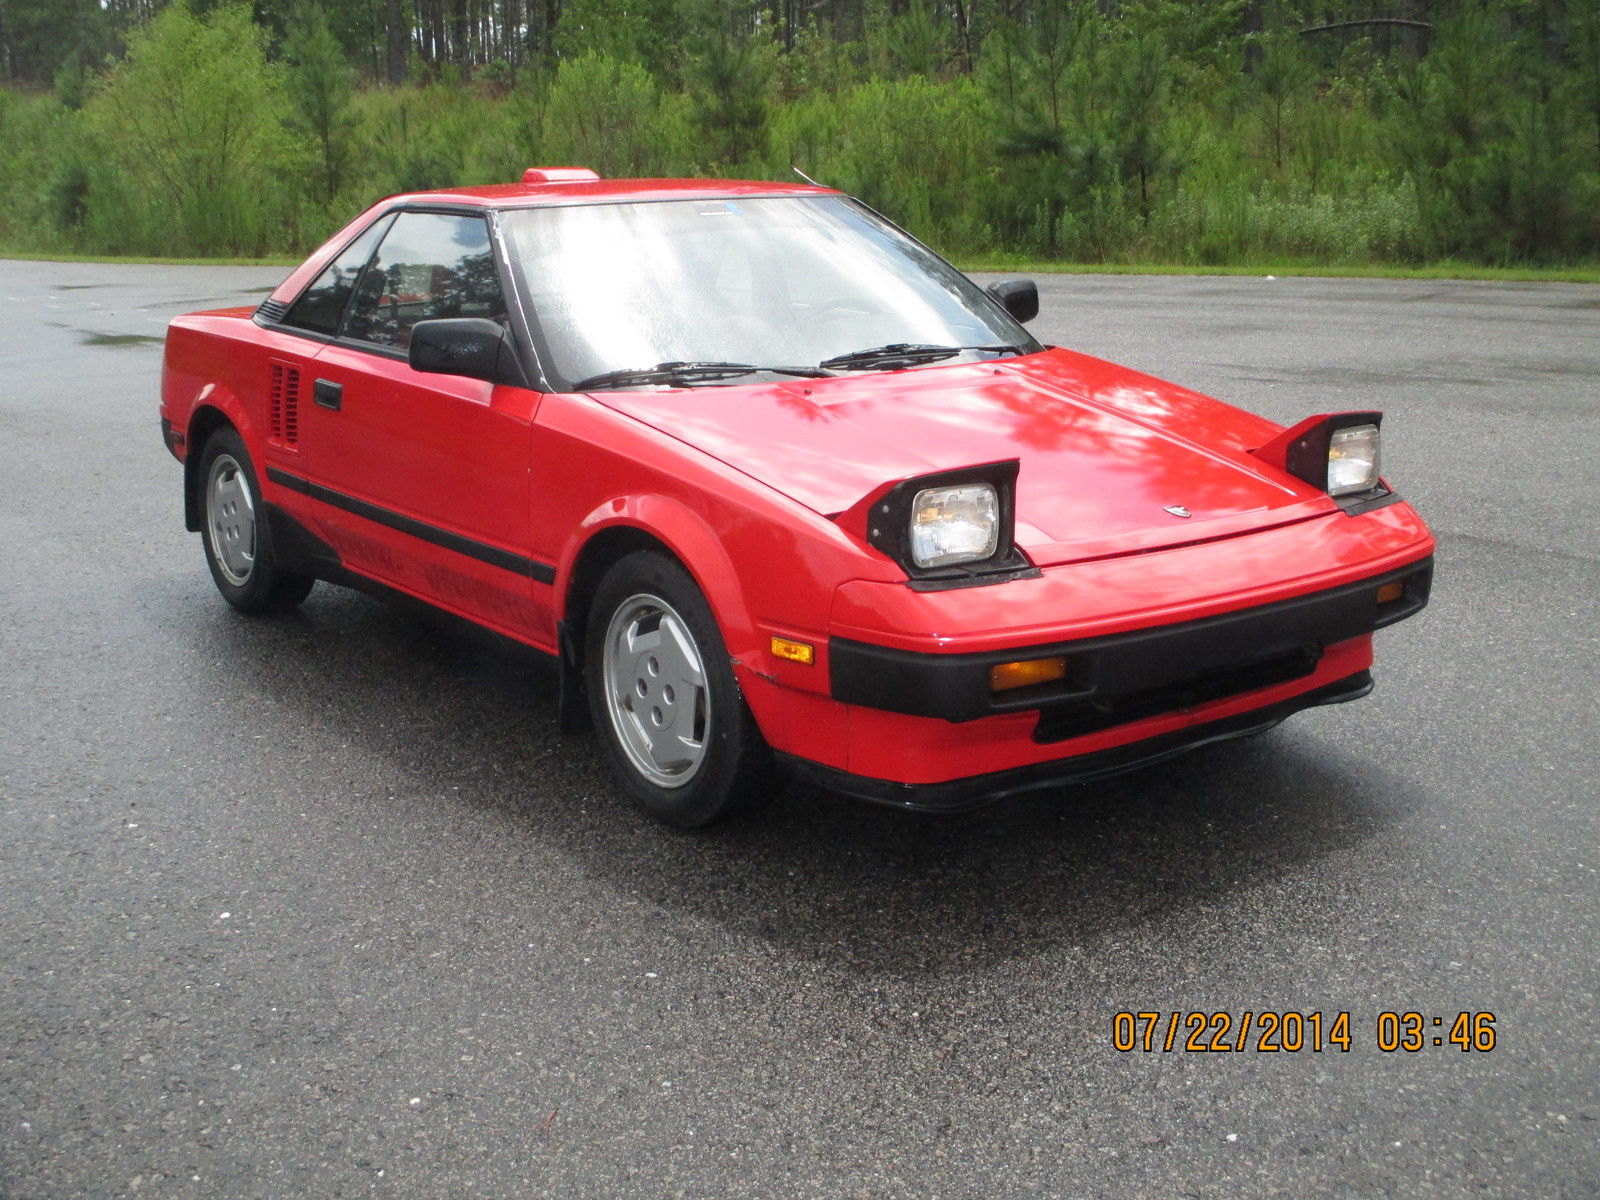 x copy 1985 toyota mr2 rusty but trusty. Black Bedroom Furniture Sets. Home Design Ideas